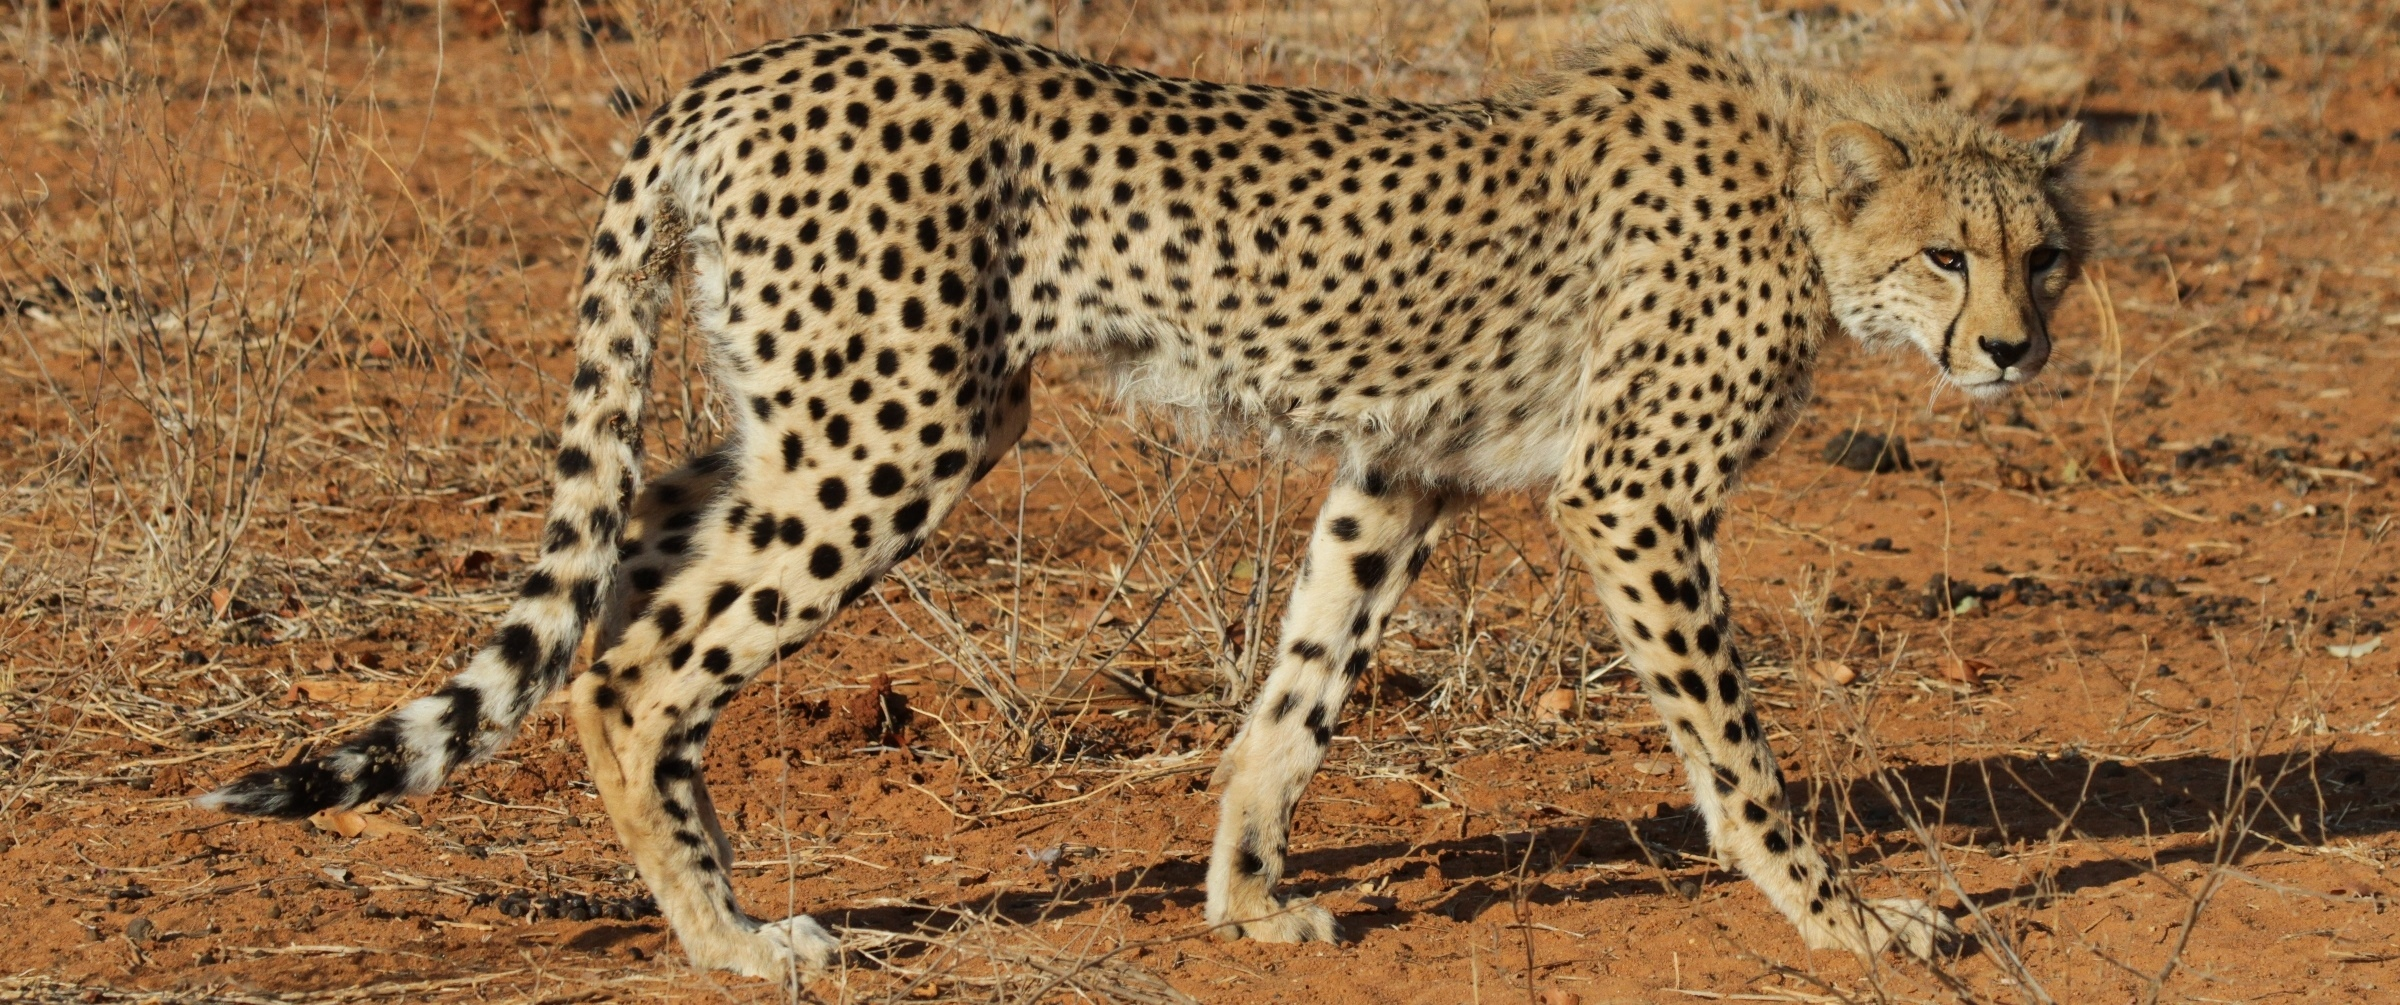 cheetah range wide conservation program for cheetah and african